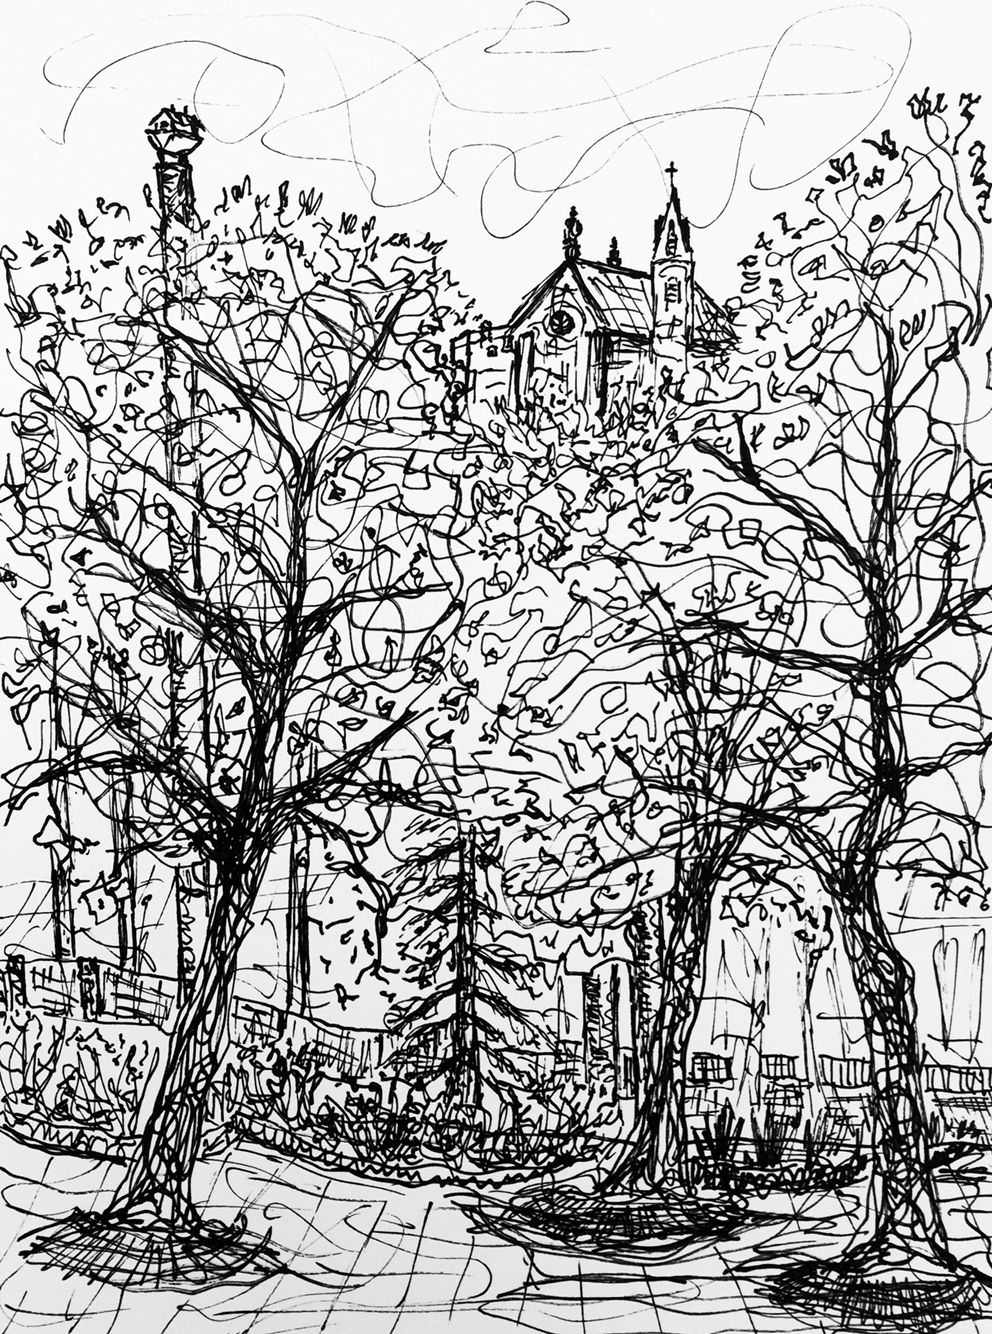 Ink Drawing by C.t. Rasmuss (2015).